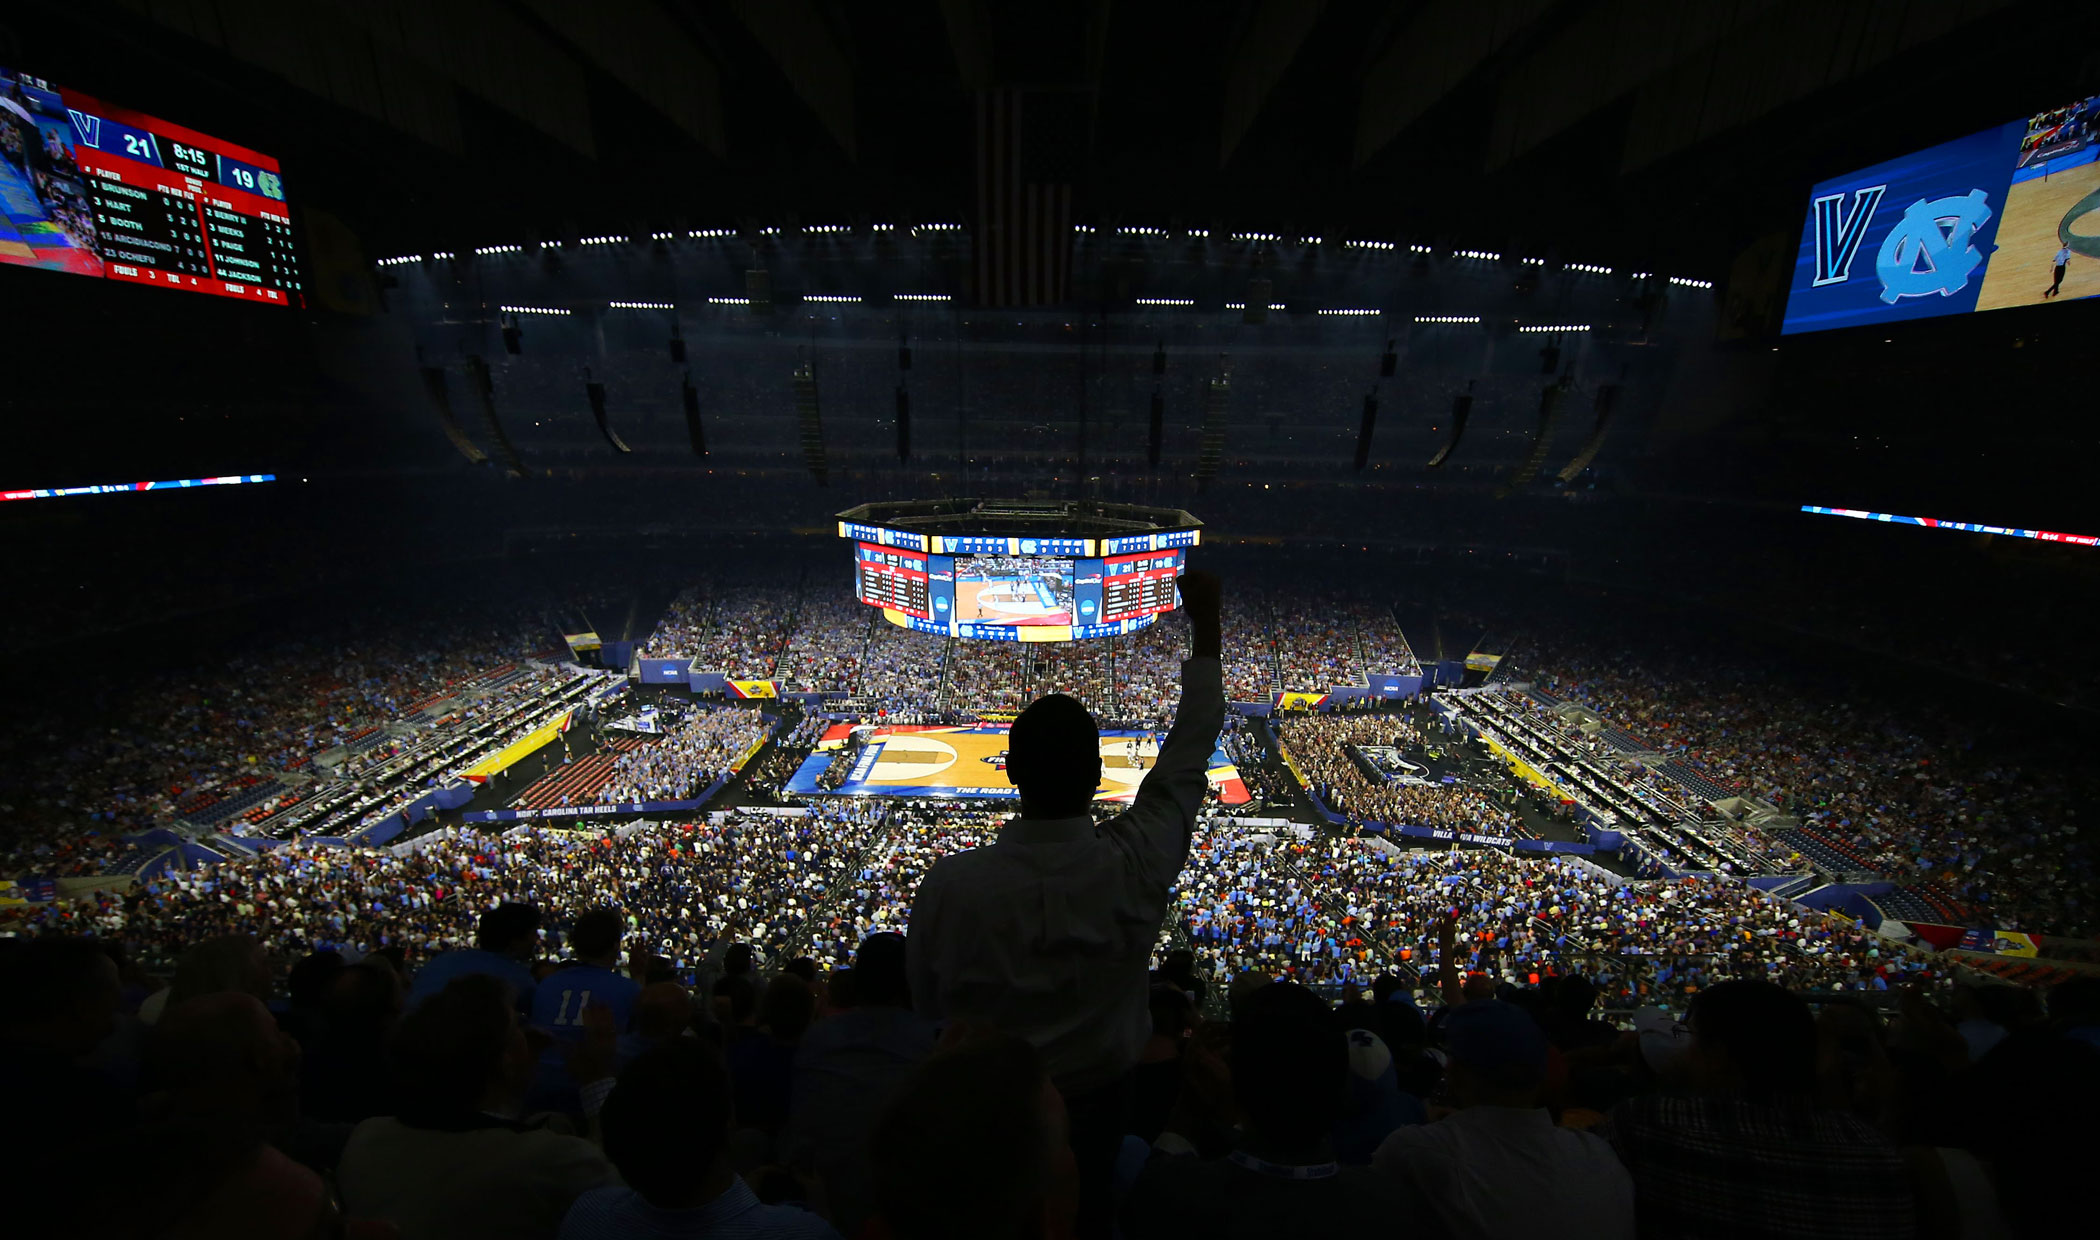 Fans cheer during the first half of the NCAA college basketball National Championship  game between Villanova and North Carolina on April 4, 2016 in Houston.